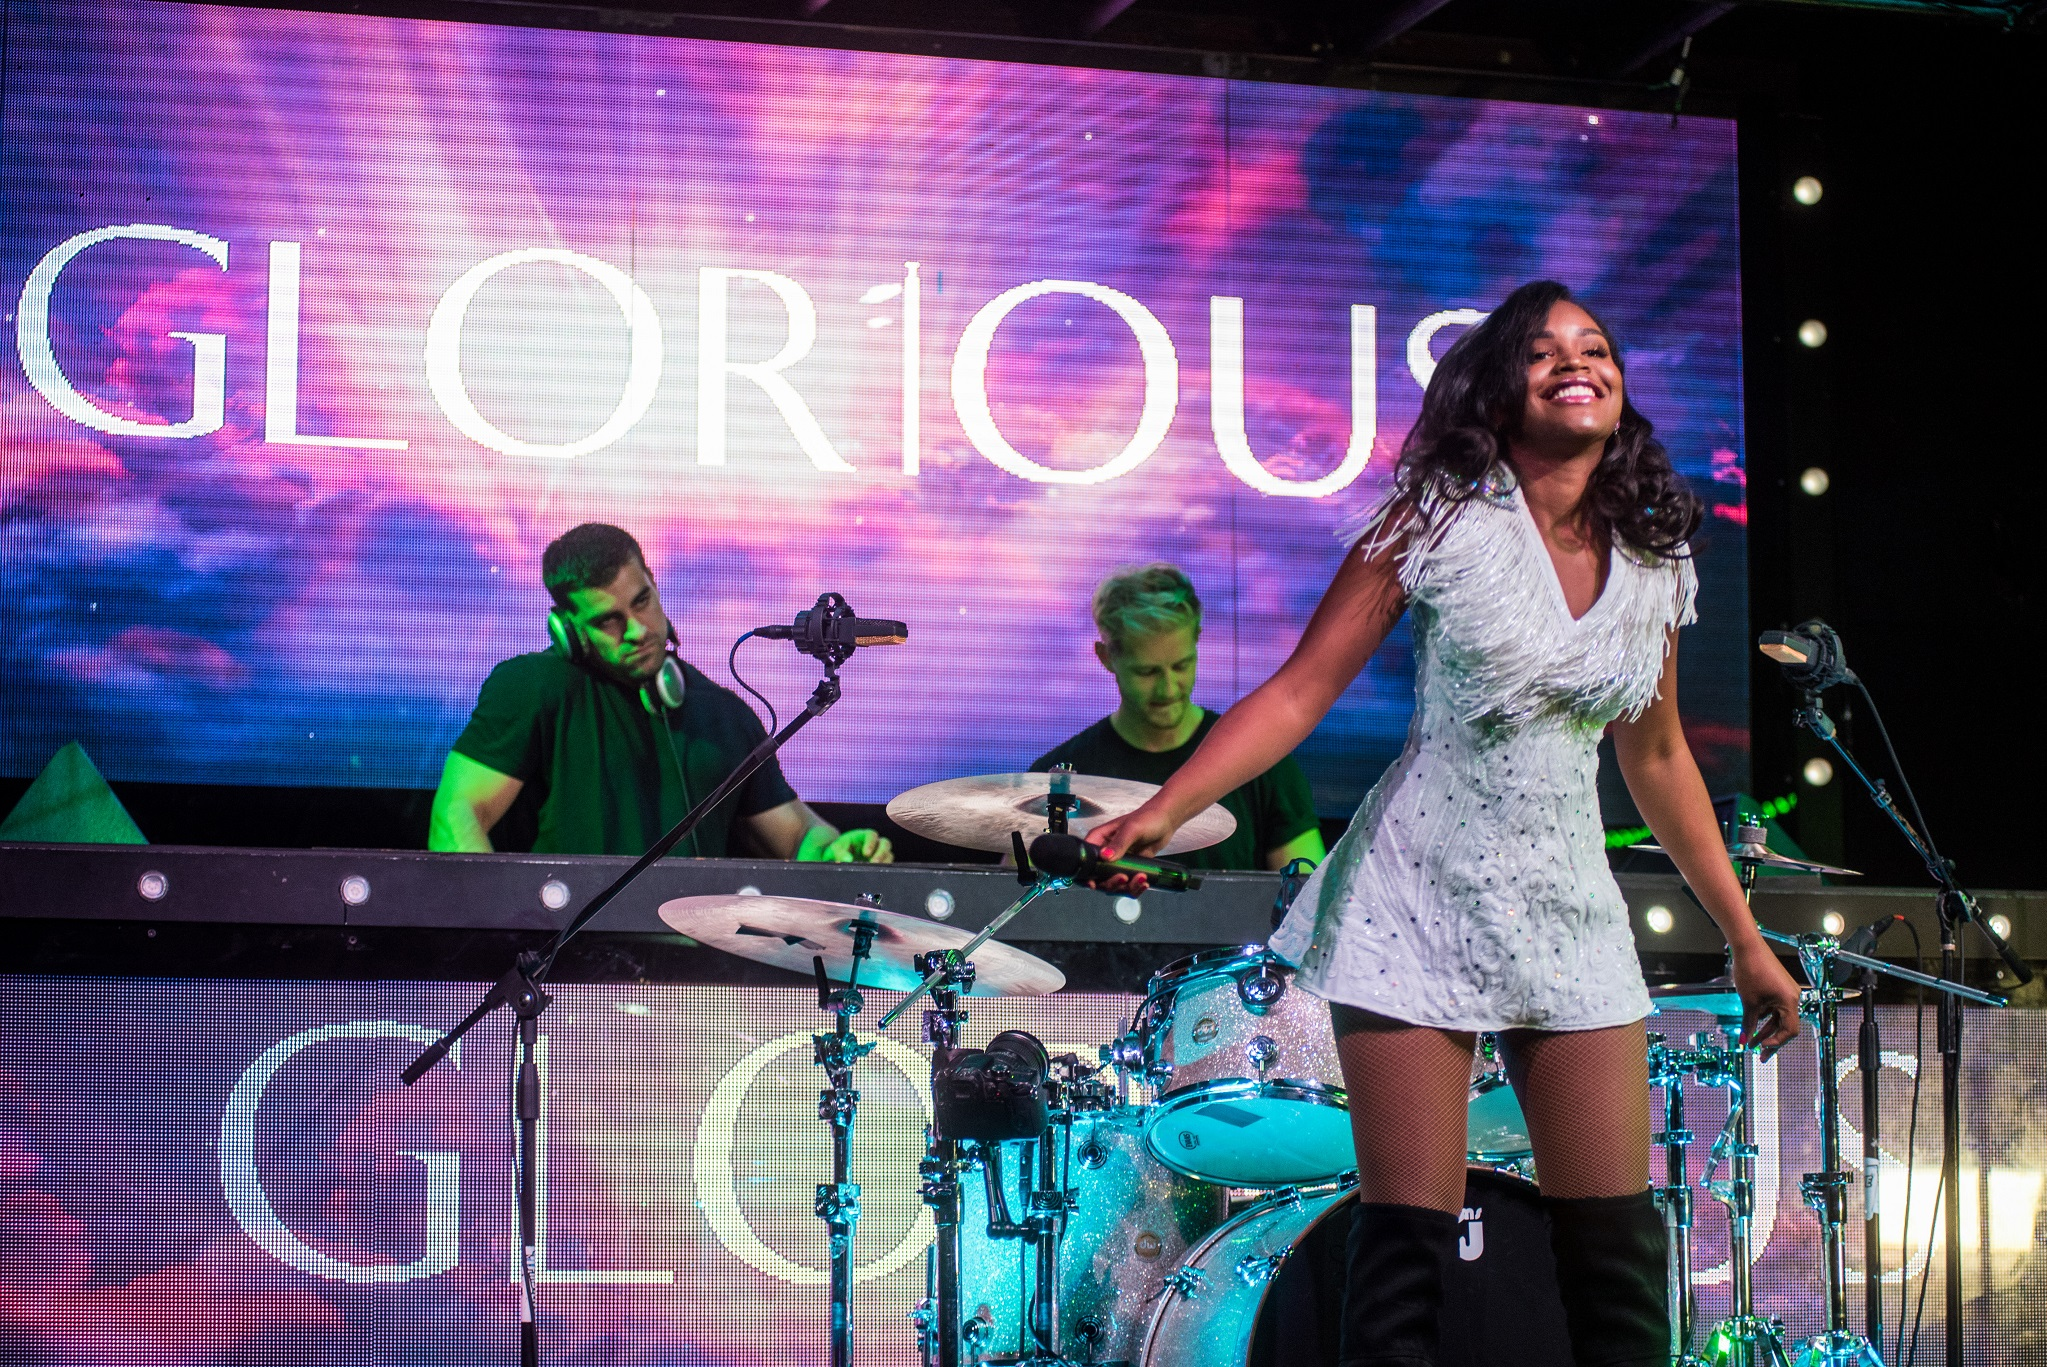 Glorious-Singer-Livetronica Drummer-Producer-Songwriter-Marquee-Nightclub-Video-New York-NY-43lr.jpg